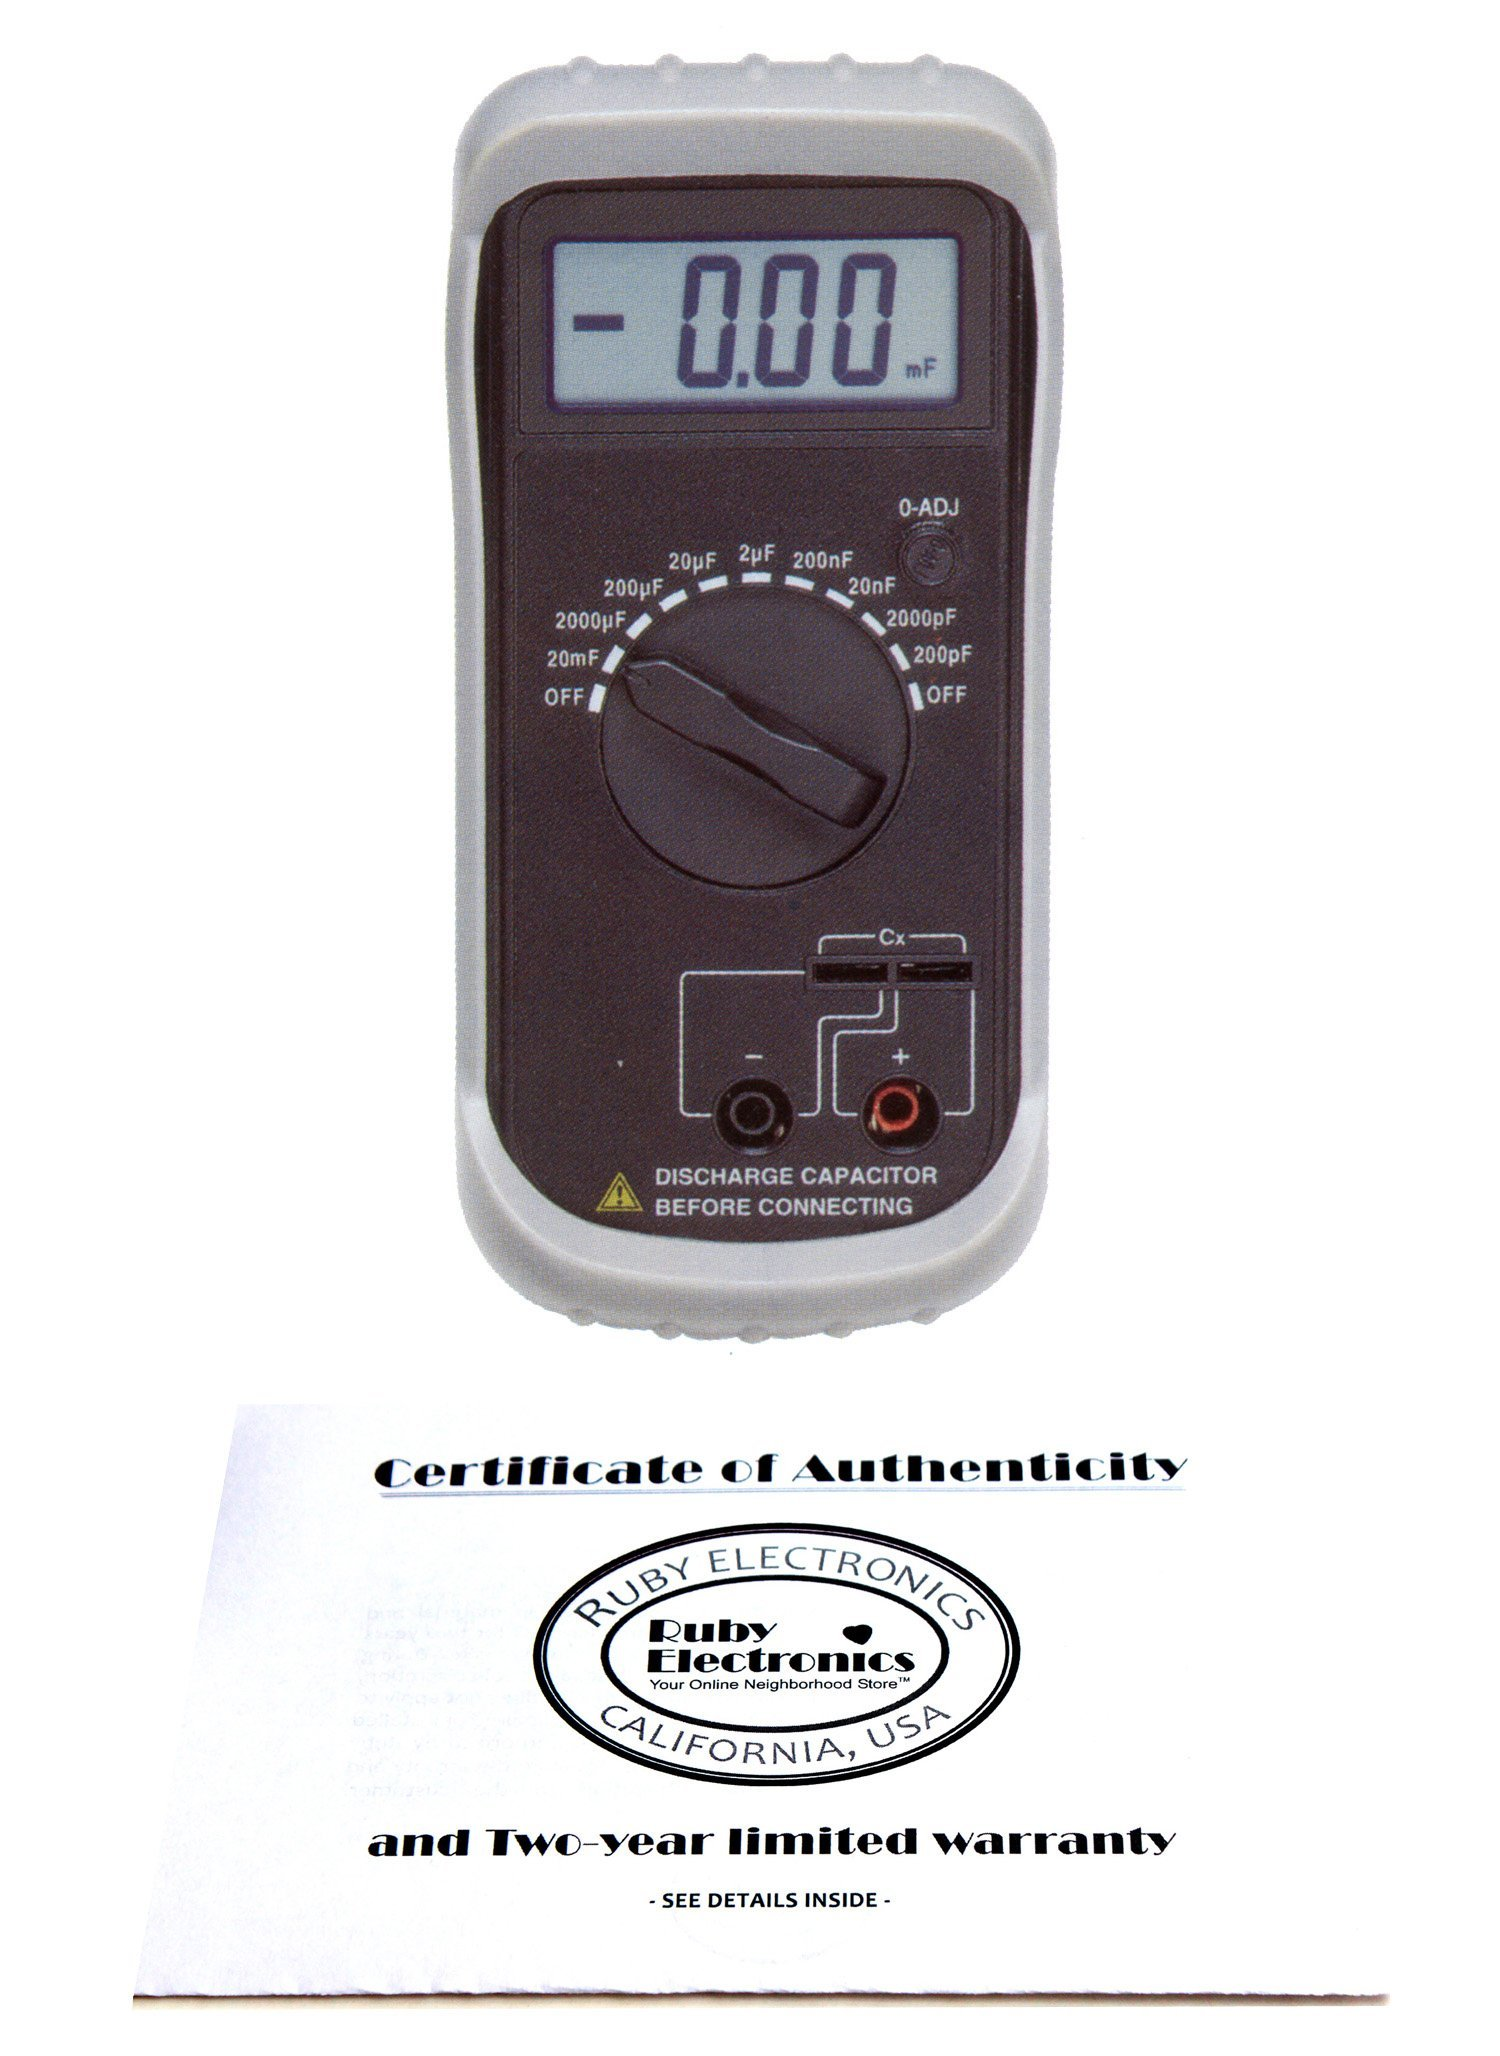 Ruby Electronics DT-6500 Professional Digital High Accuracy Capacitance Meter 0.1 pF to 20 mF